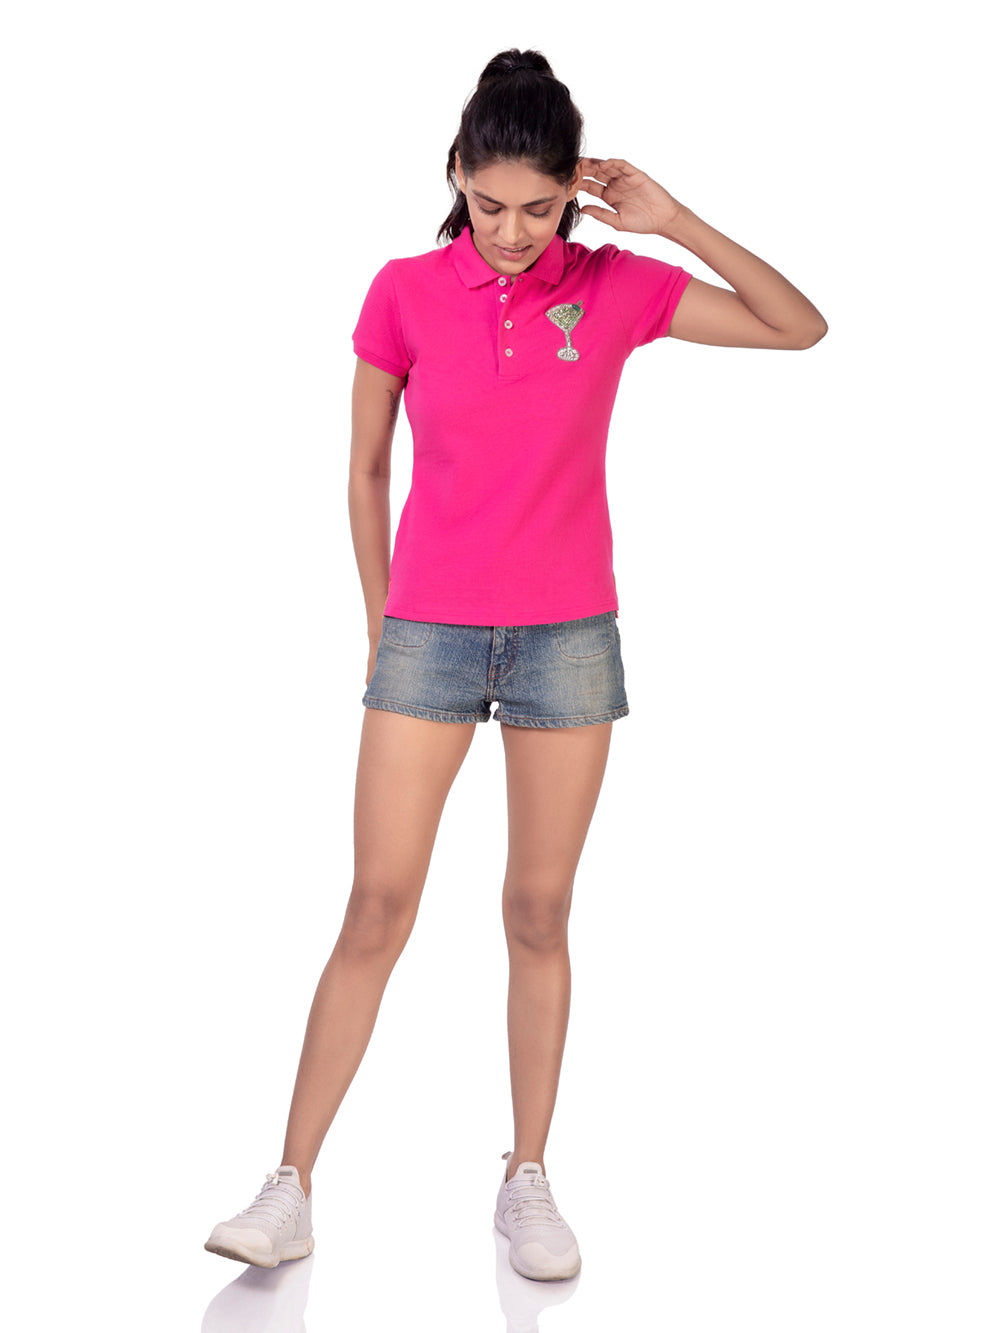 POLO T-SHIRT WITH COCKTAIL GLASS